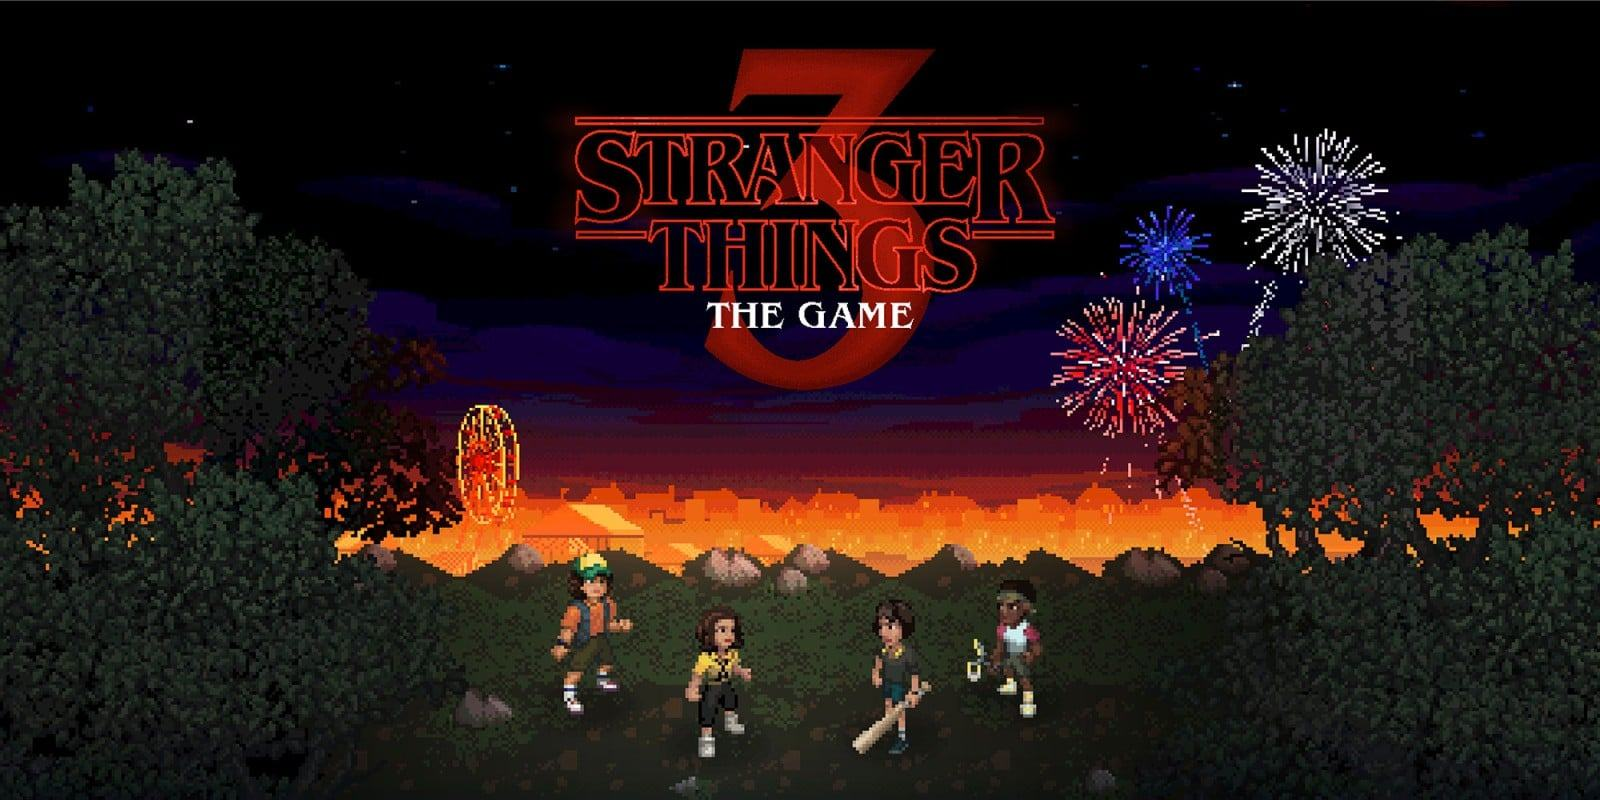 La copertina di Stranger Things 3: The Game